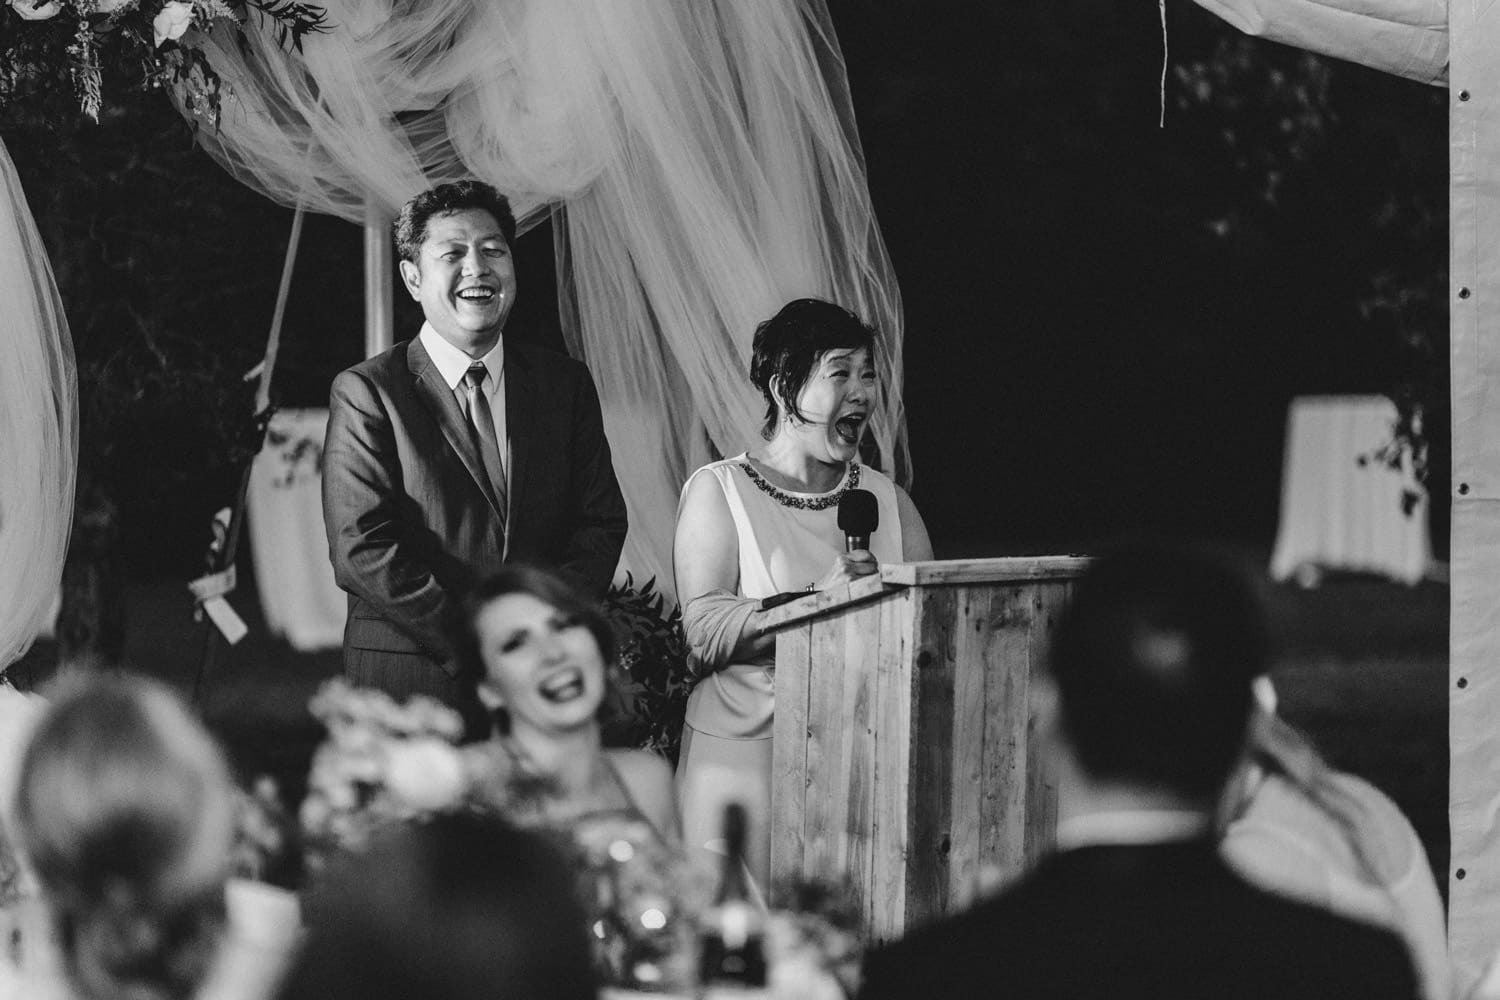 groom's parents give a speech under a tent